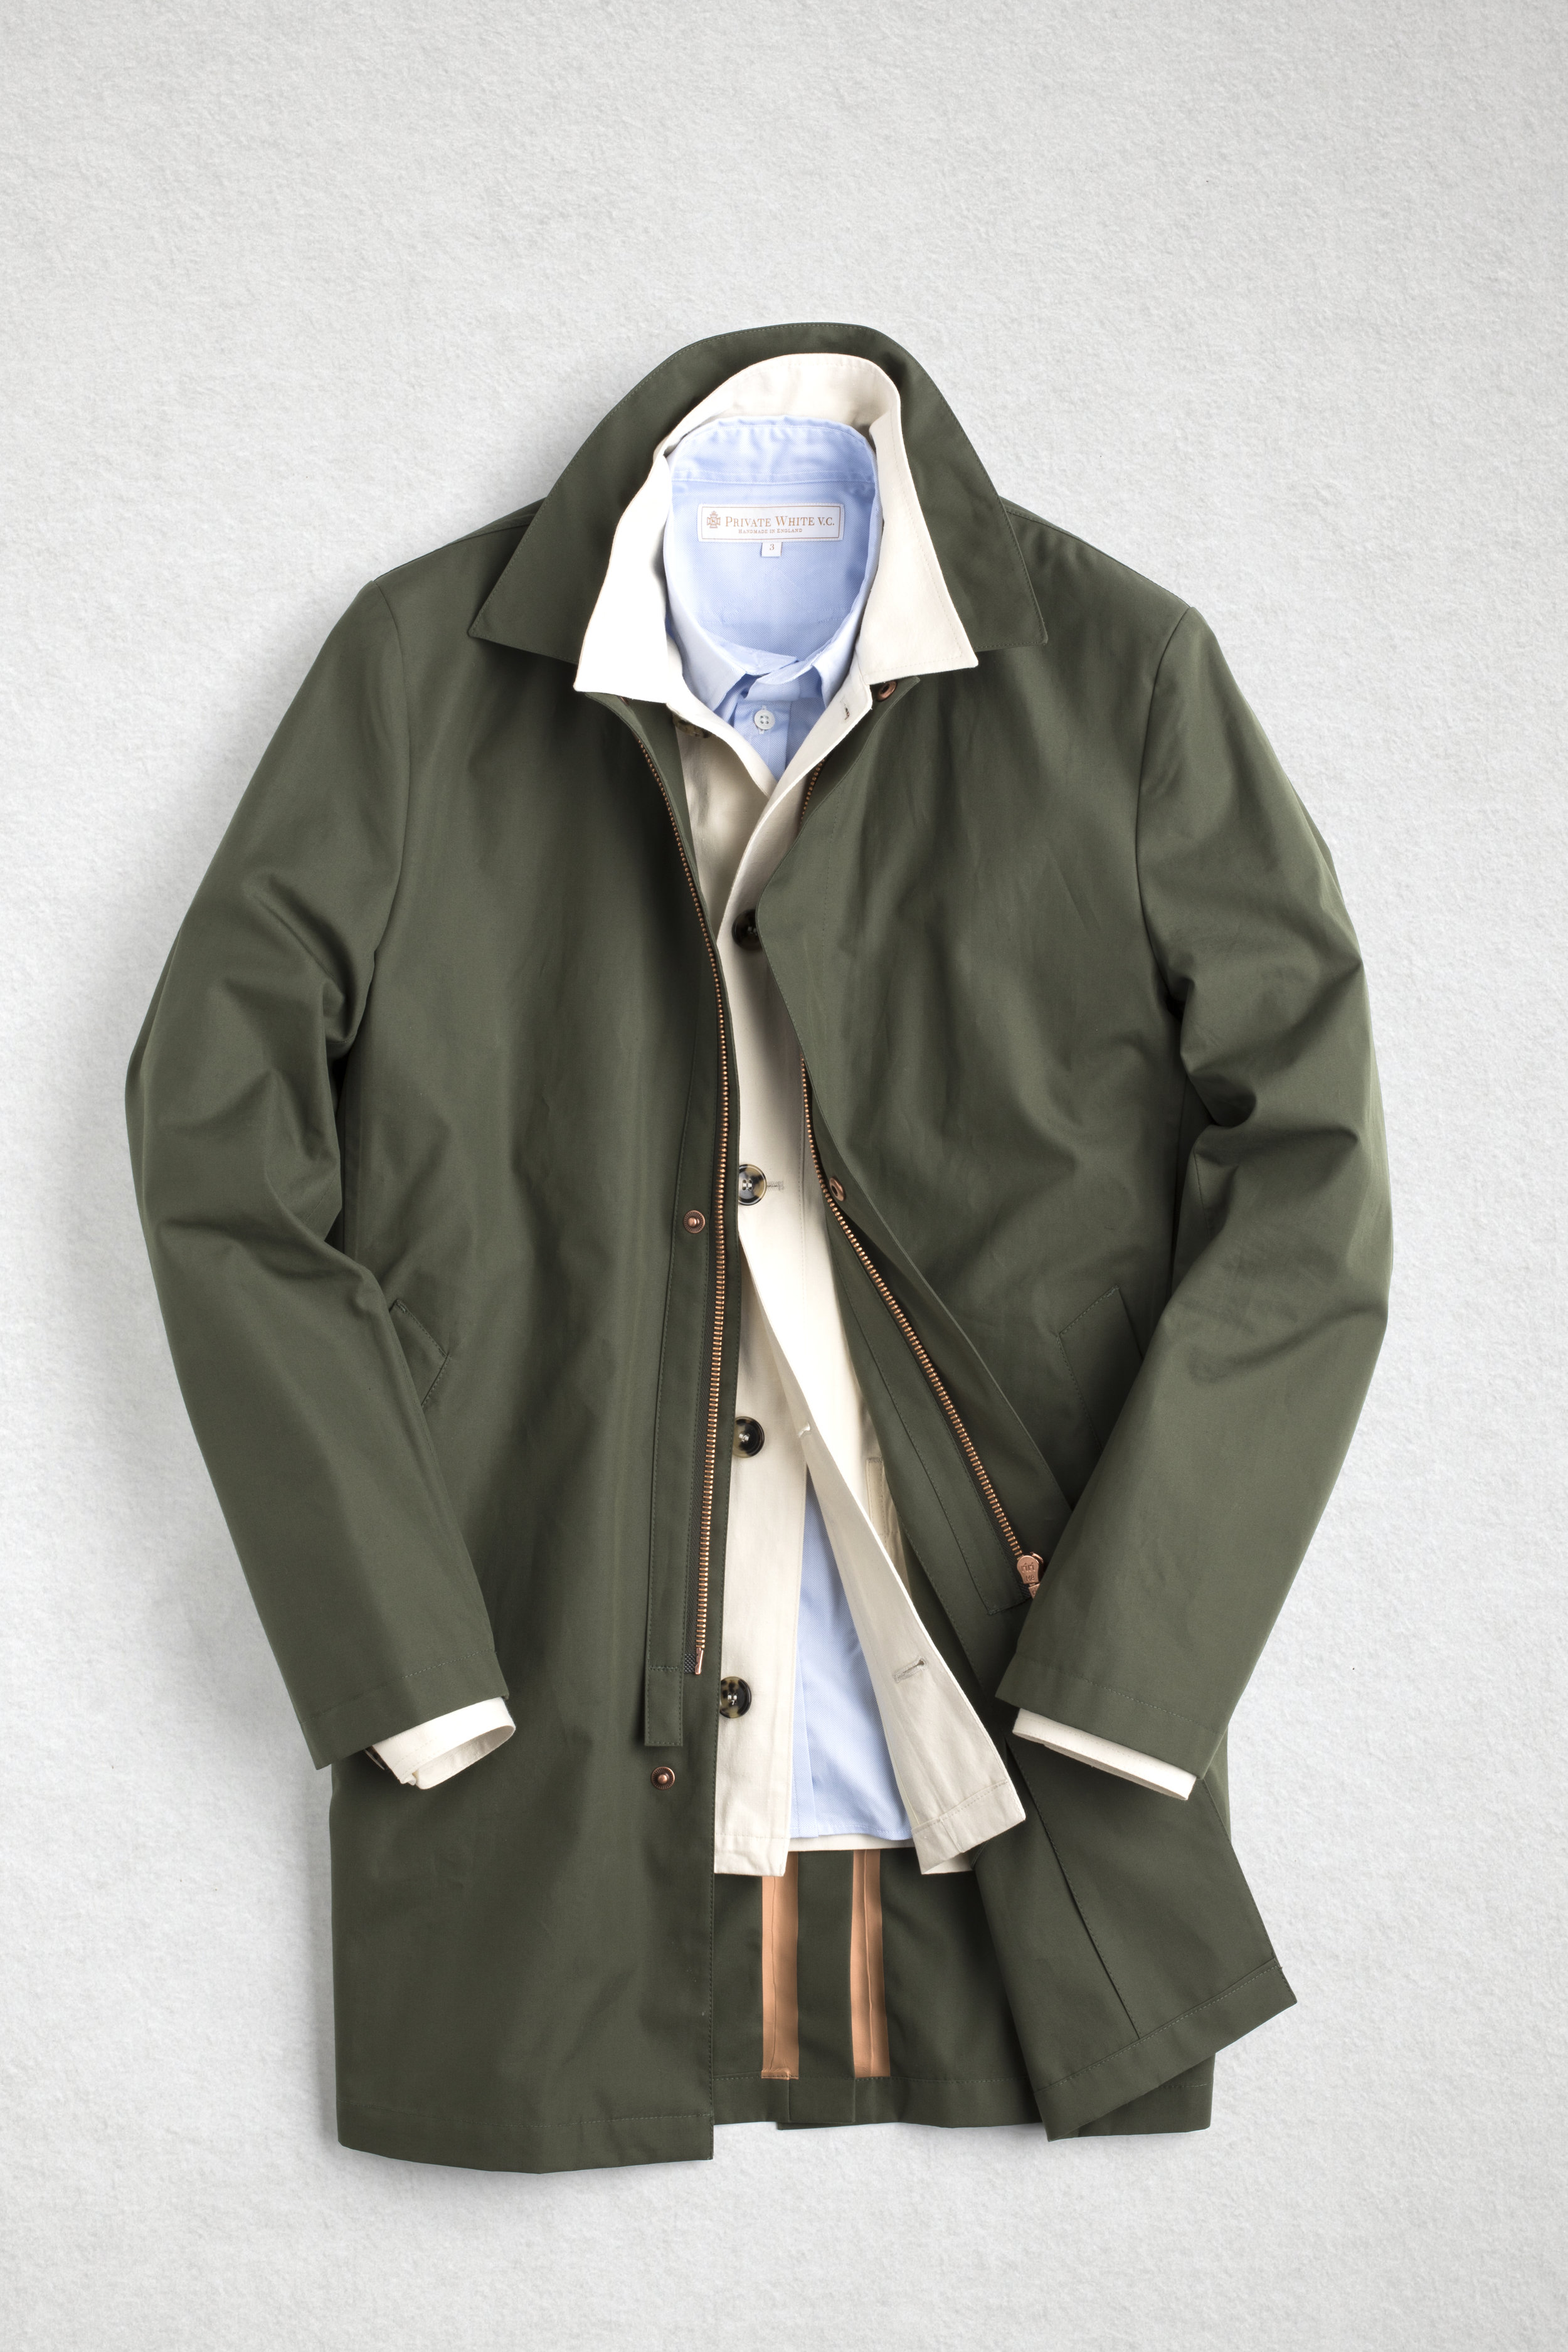 Private White V.C. rainmac - £650 - The ultimate must have for rainy days